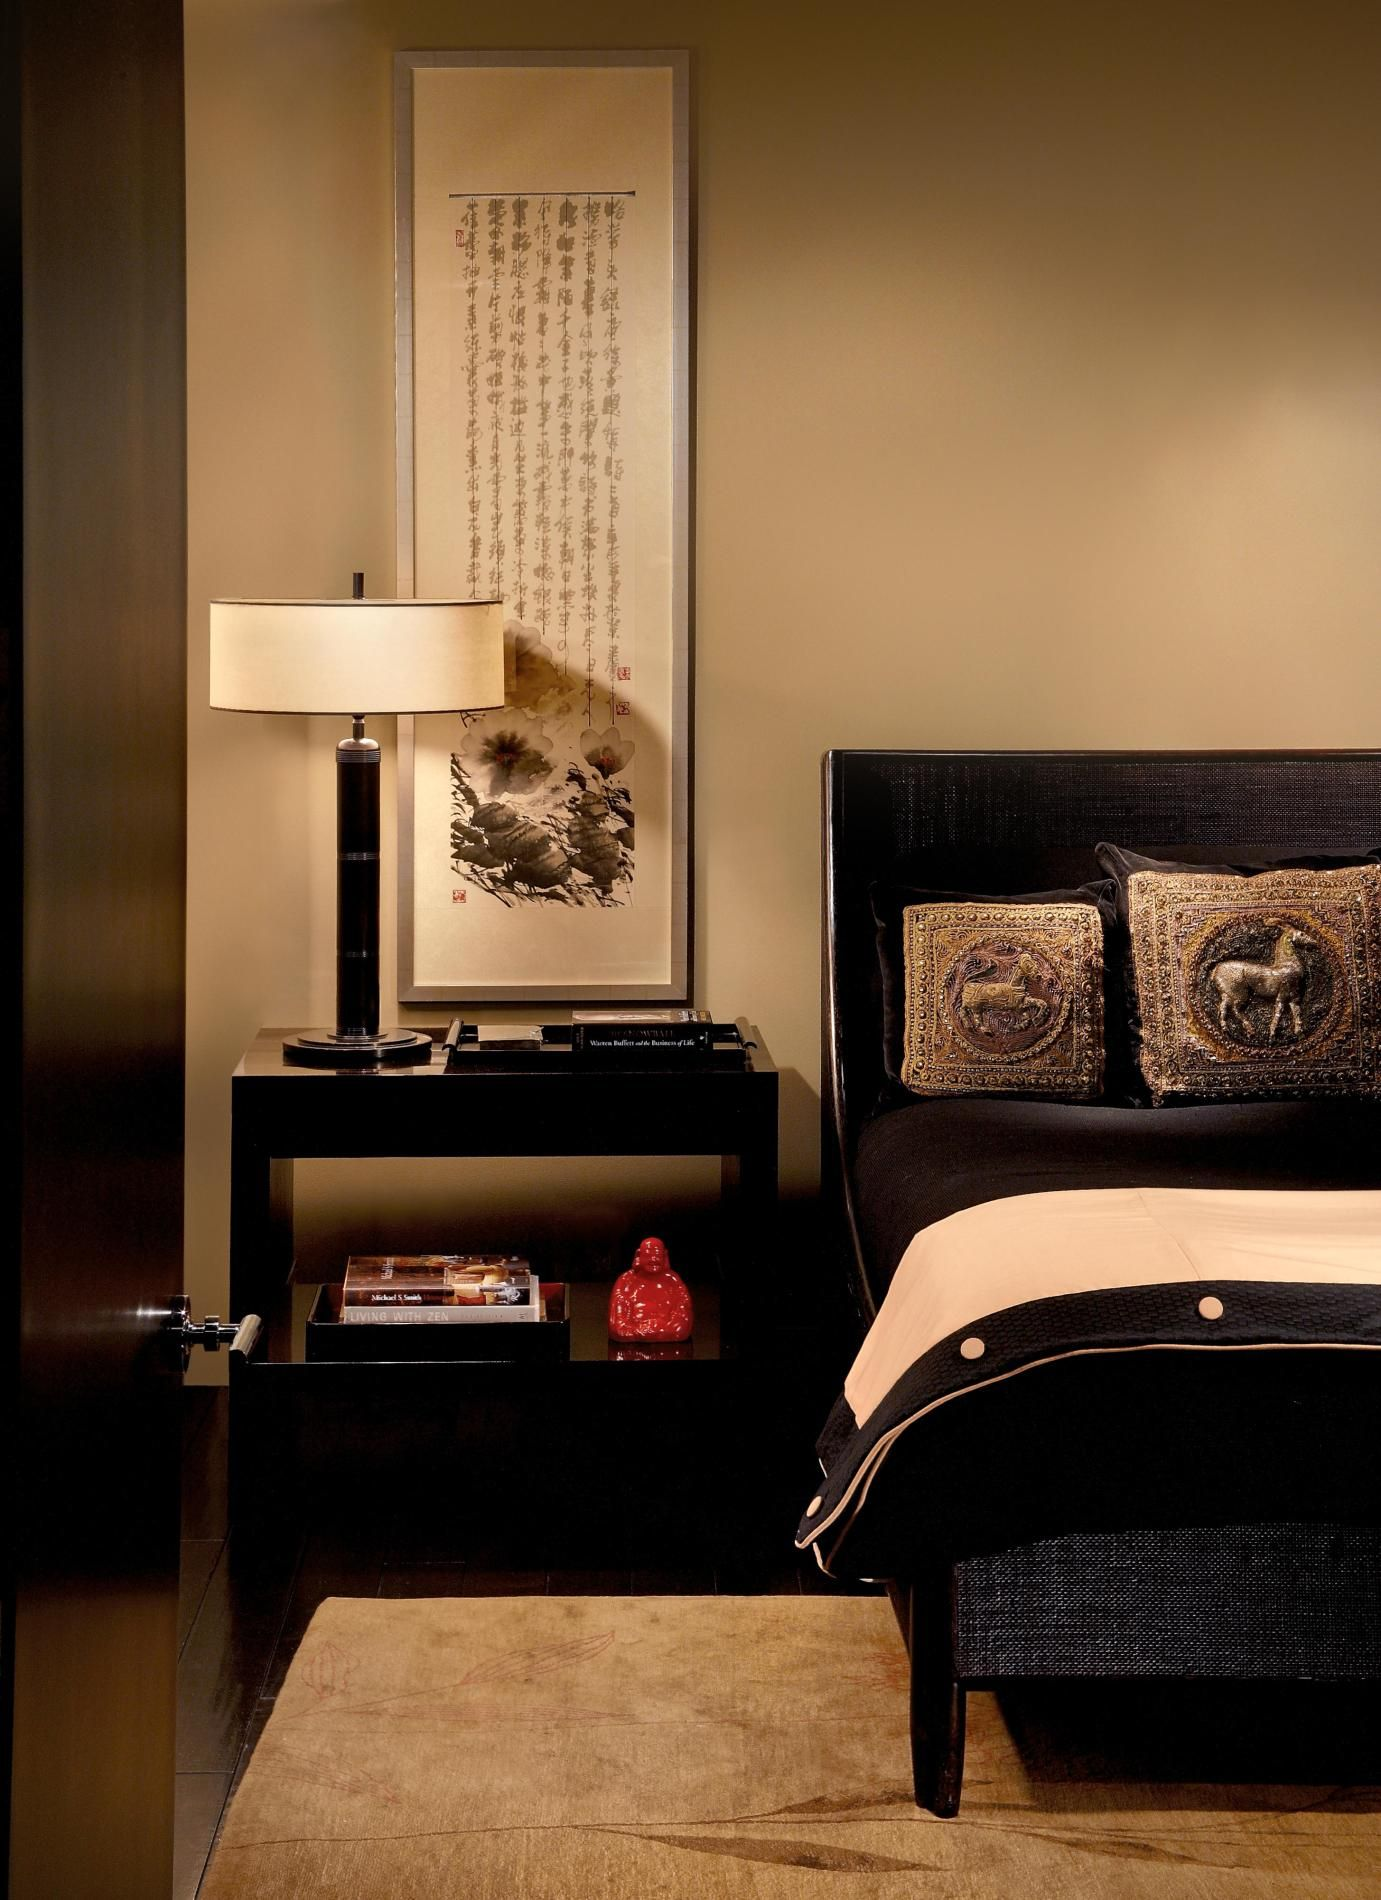 Chinese Decorations For Bedroom 25 Asian Bedroom Design Ideas Bedroom Design Asian